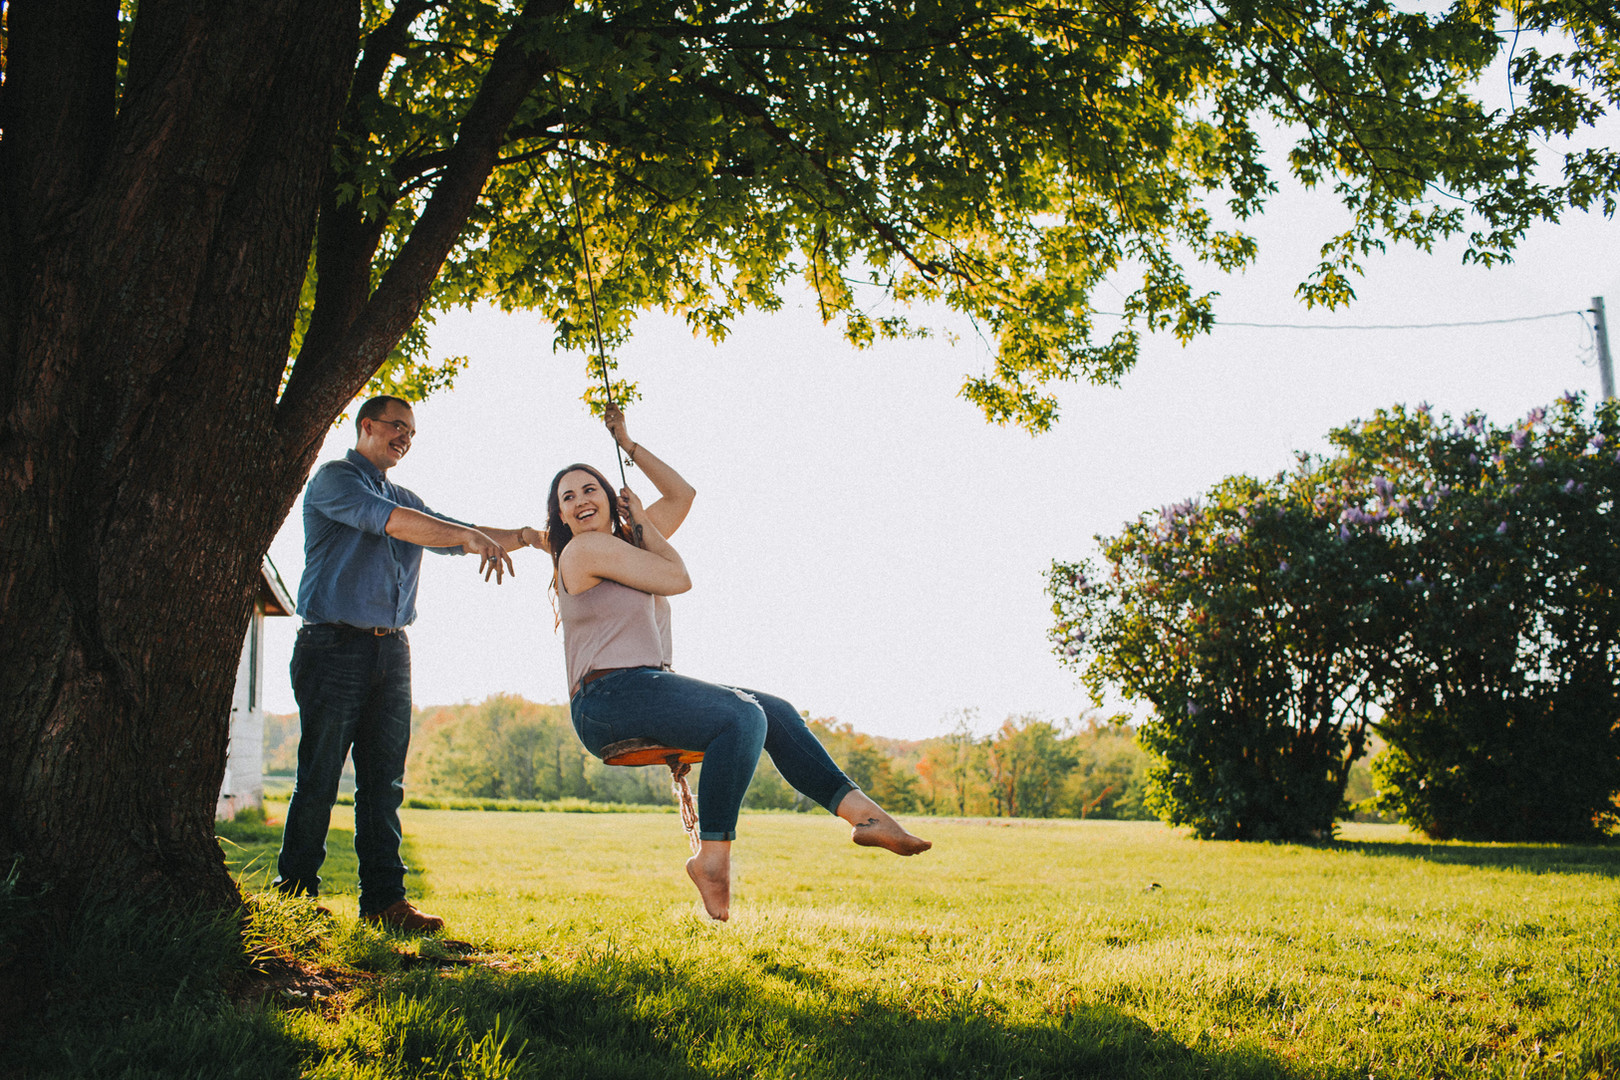 A man pushes a woman on a swing during a Madison, Wisconsin engagement session